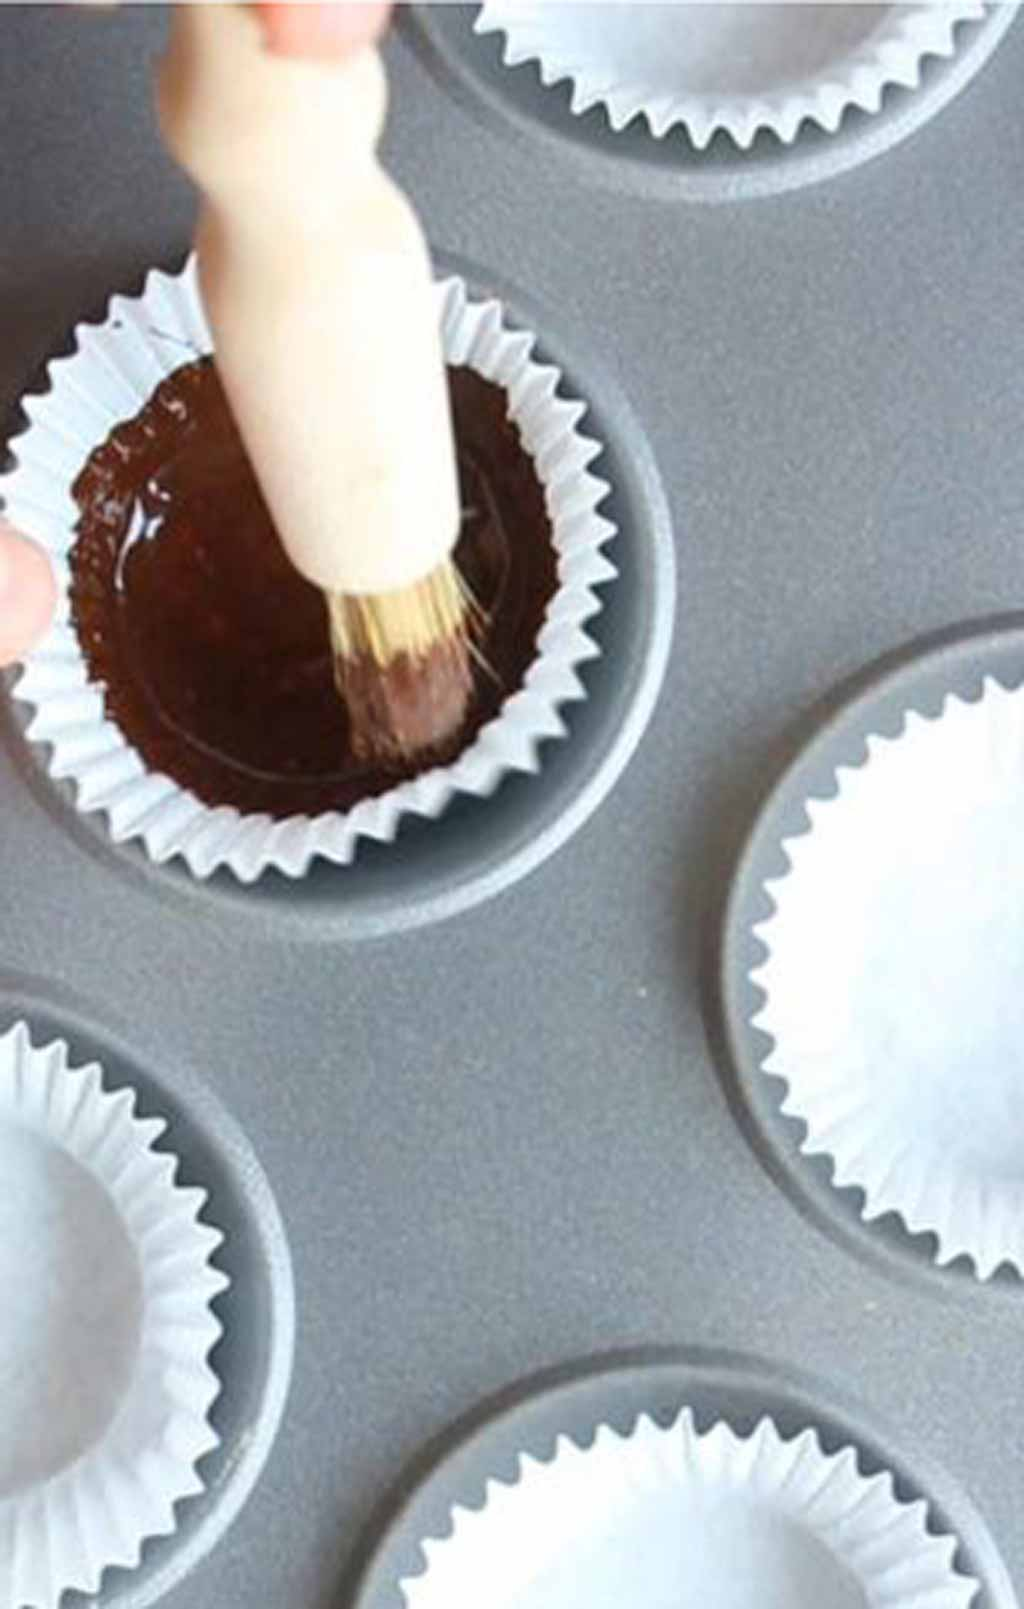 Painting Chocolate Onto The Paper Case With A Pastry Brush